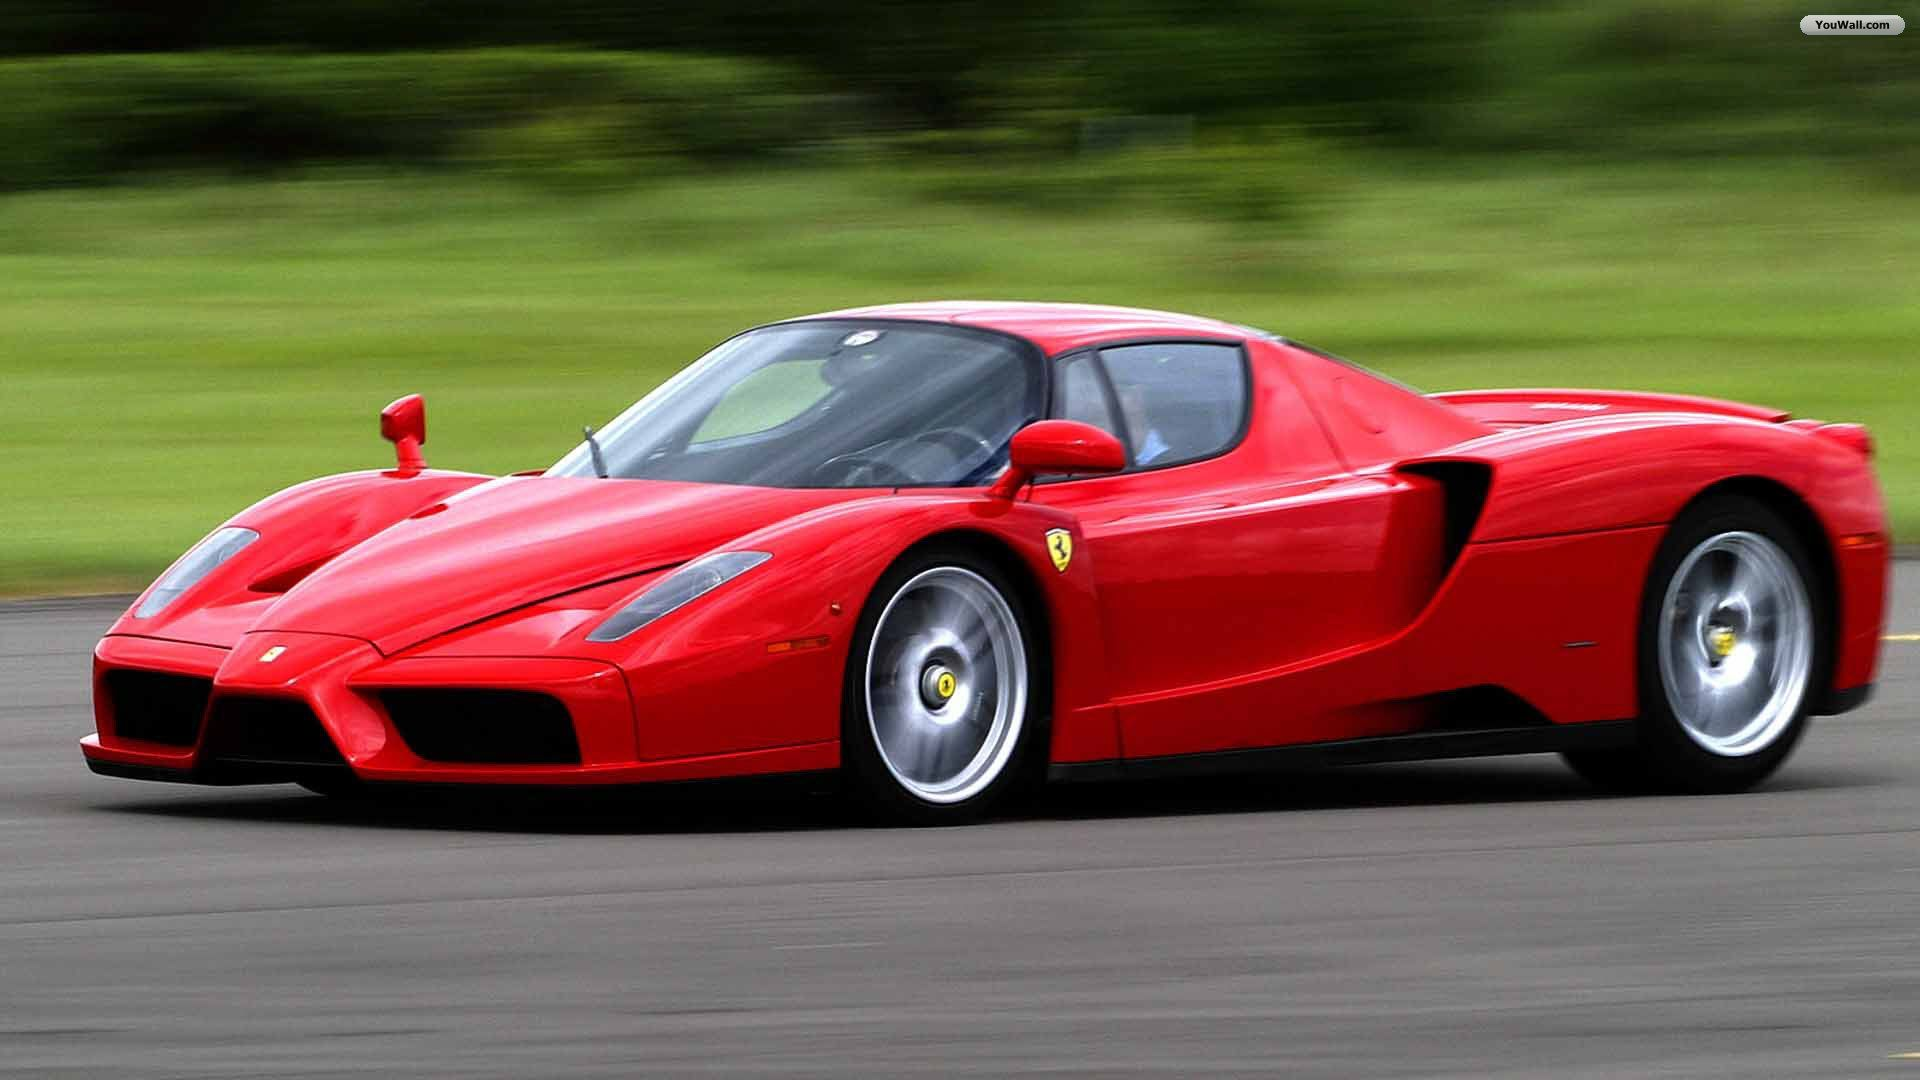 This is the ferrari enzo it was made with 12 cylinders and was made for the racetrack but sorry car guys there were only 12 made